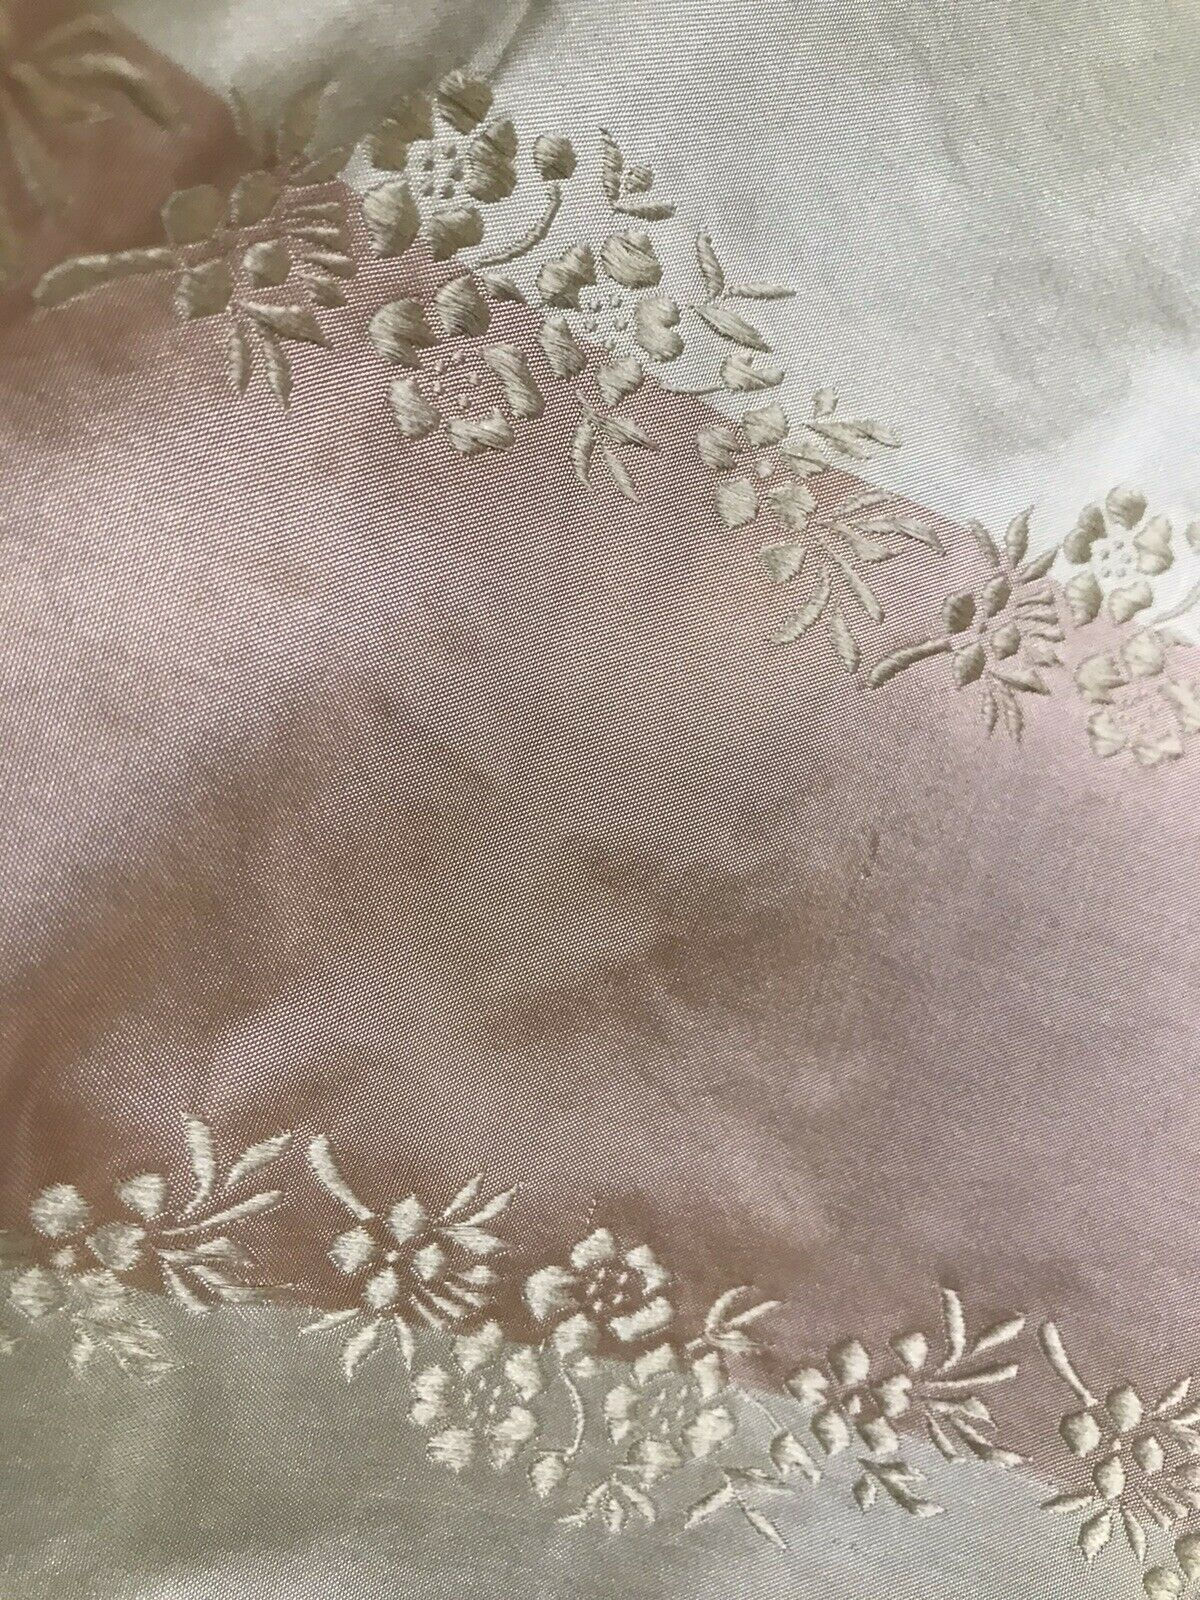 NEW Lady Kristen Designer 100% Silk Taffeta Embroidered Stripe Floral Fabric- Pink & Cream